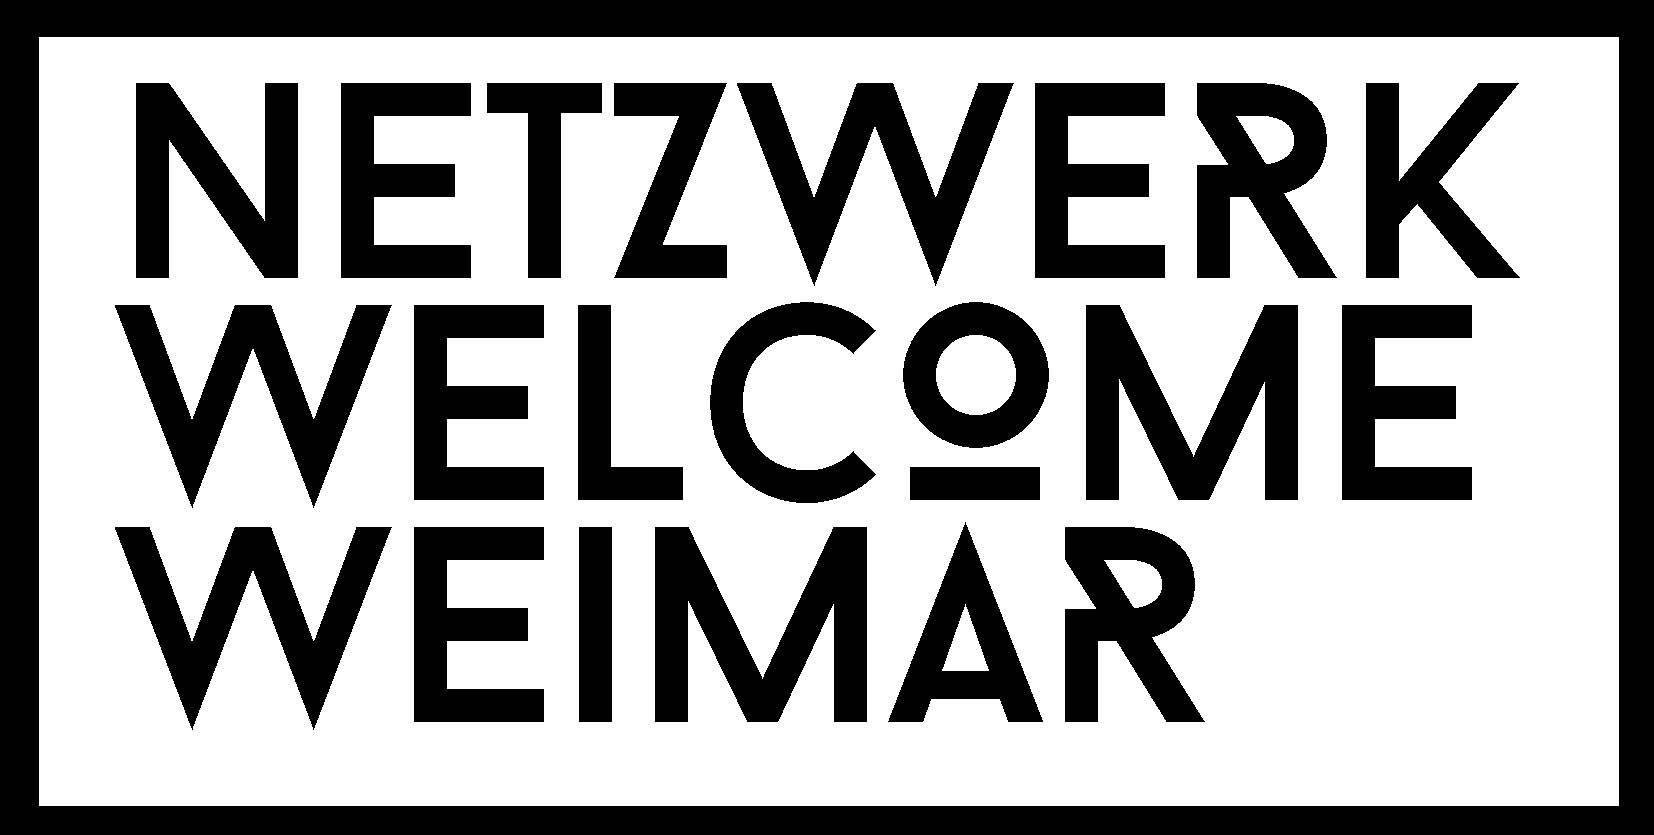 Network Welcome Weimar